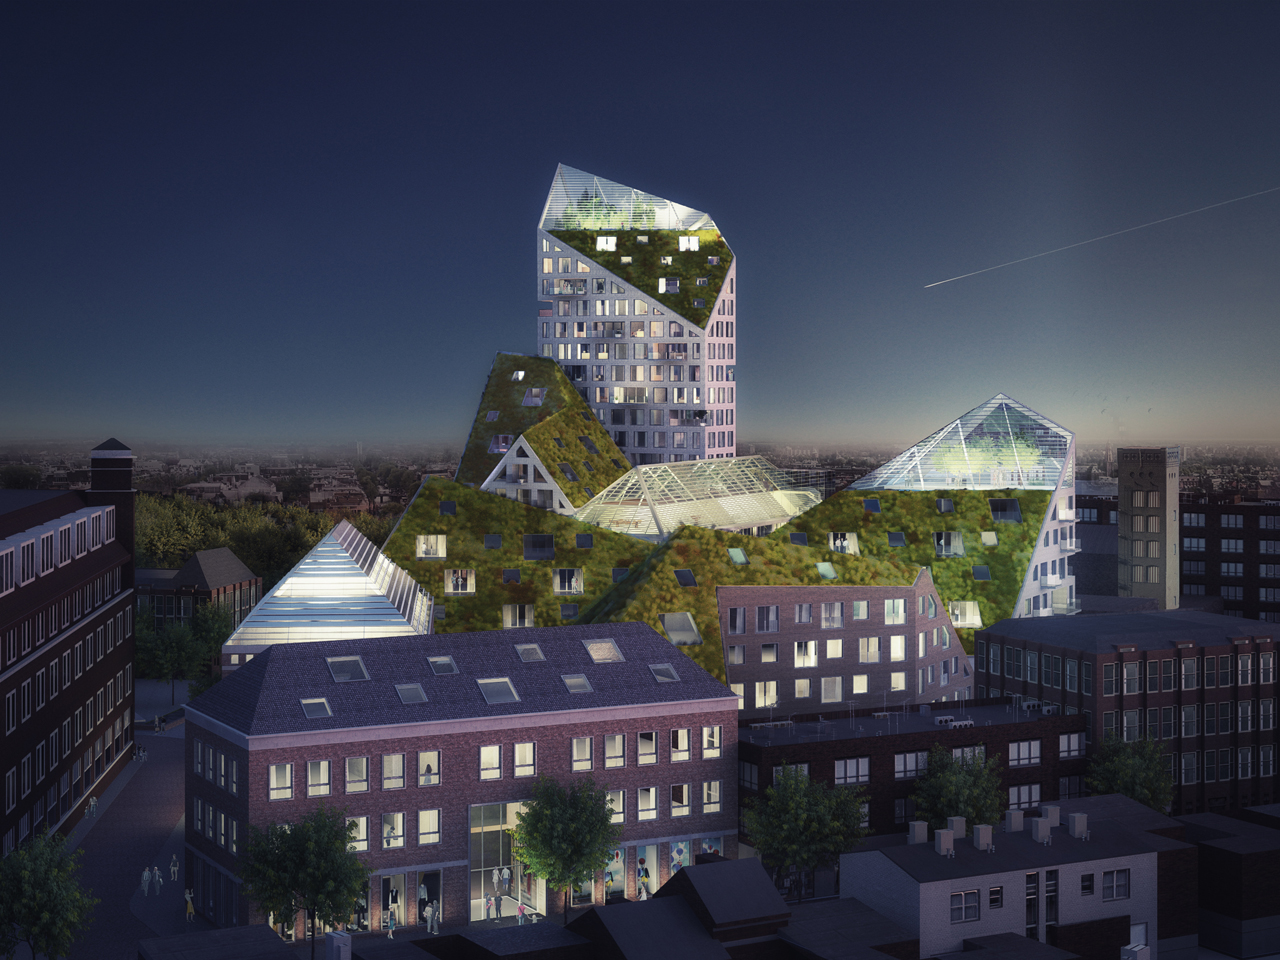 Eindhoven selects MVRDV's Nieuw Bergen, a design for sustainable residences in the city centre